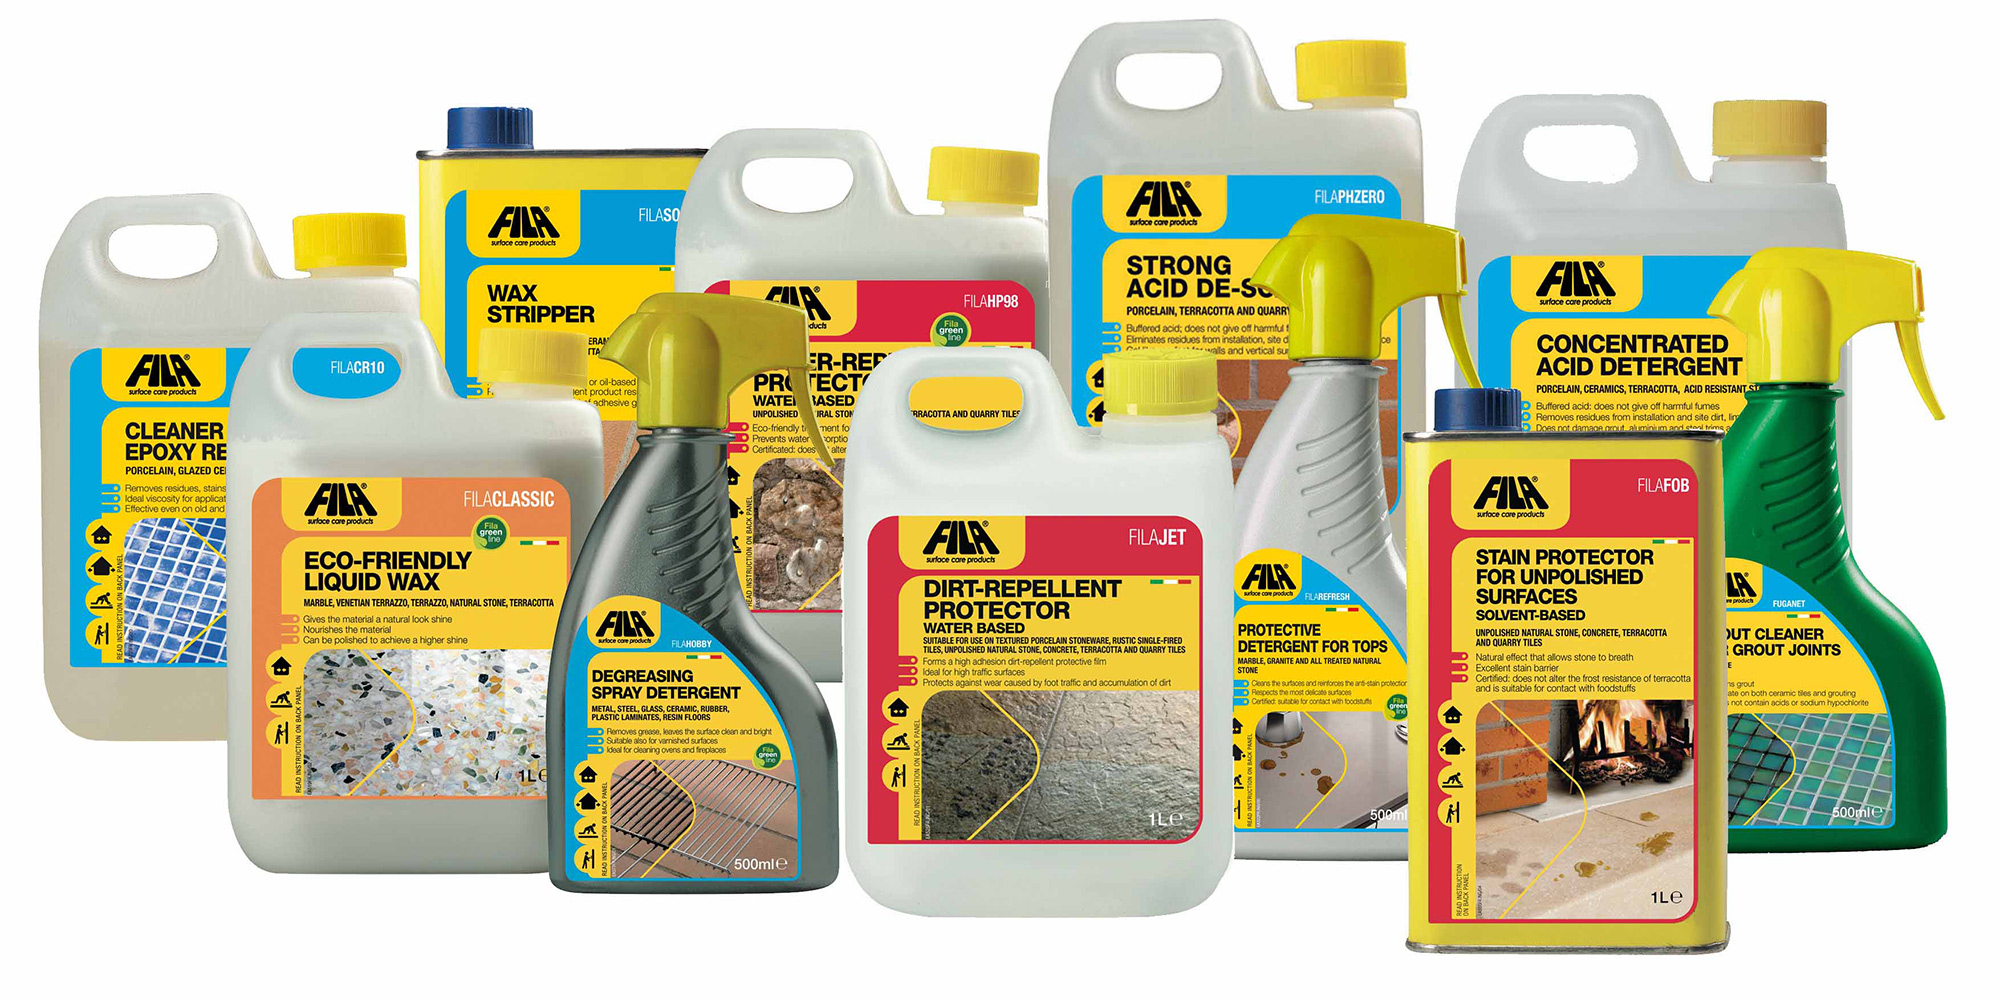 Fila Ireland. Tile surface and cleaning products.